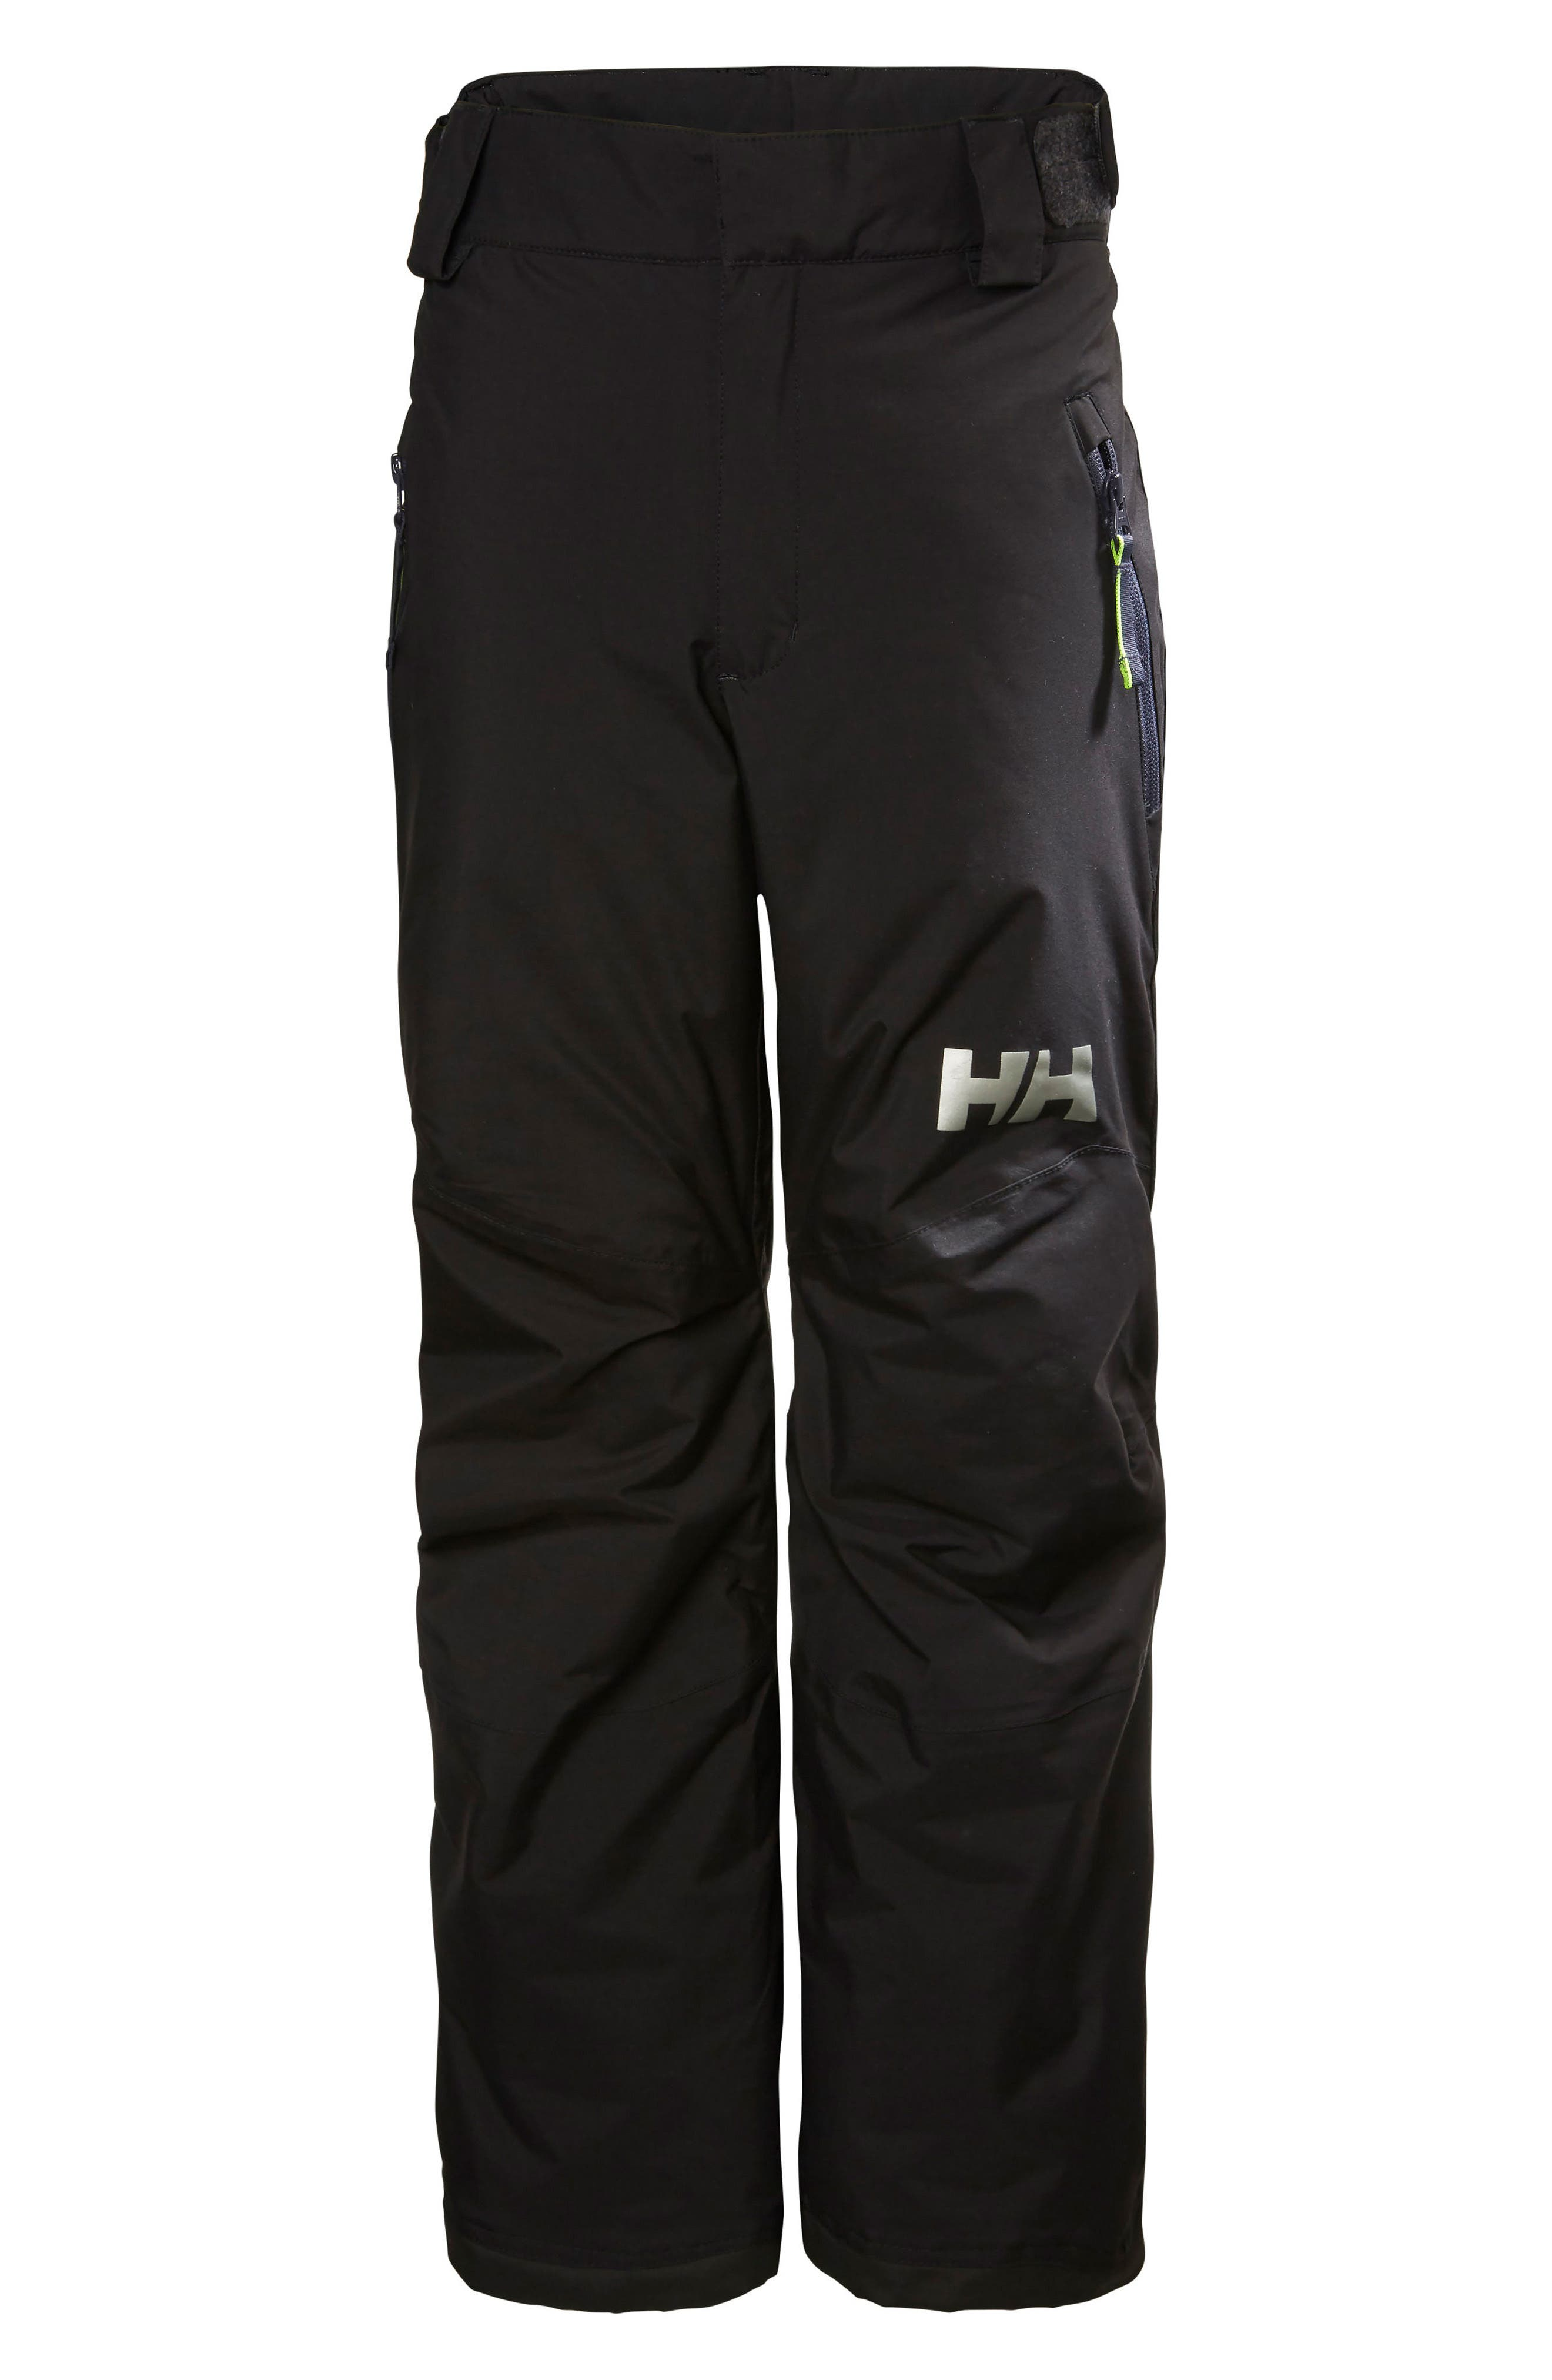 Legendary Waterproof PrimaLoft<sup>®</sup> Insulated Snow Pants,                             Main thumbnail 1, color,                             Black